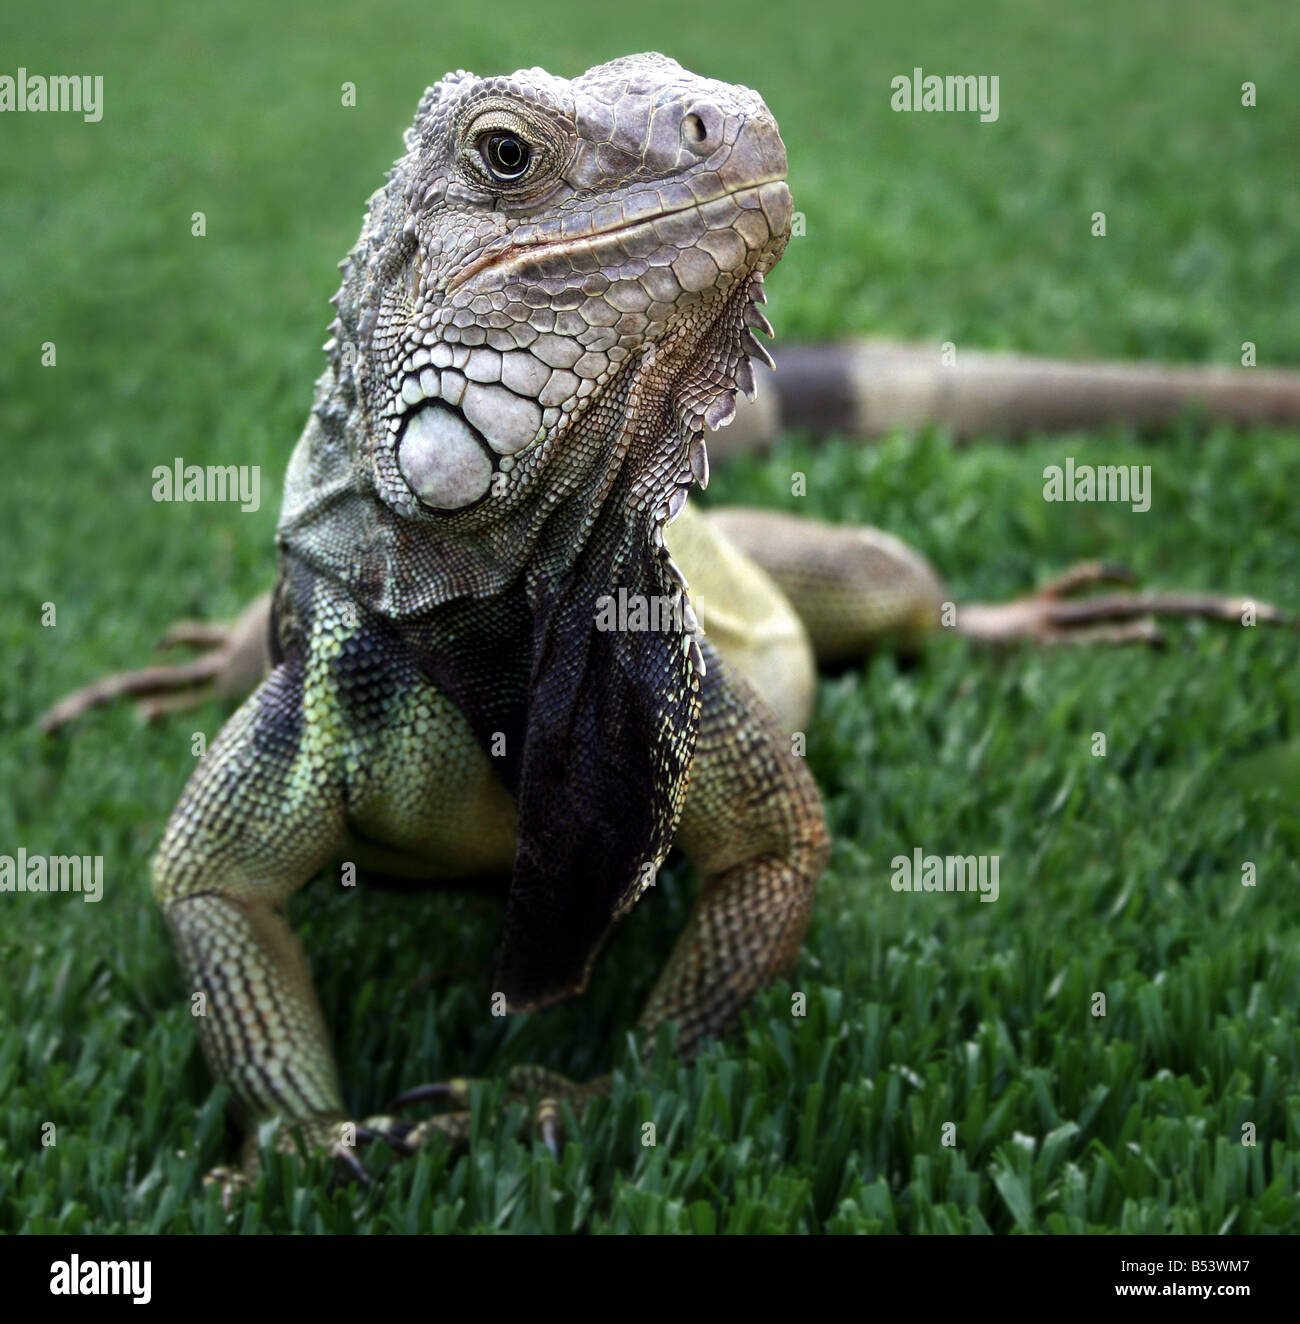 Iguana in the green grass - Stock Image